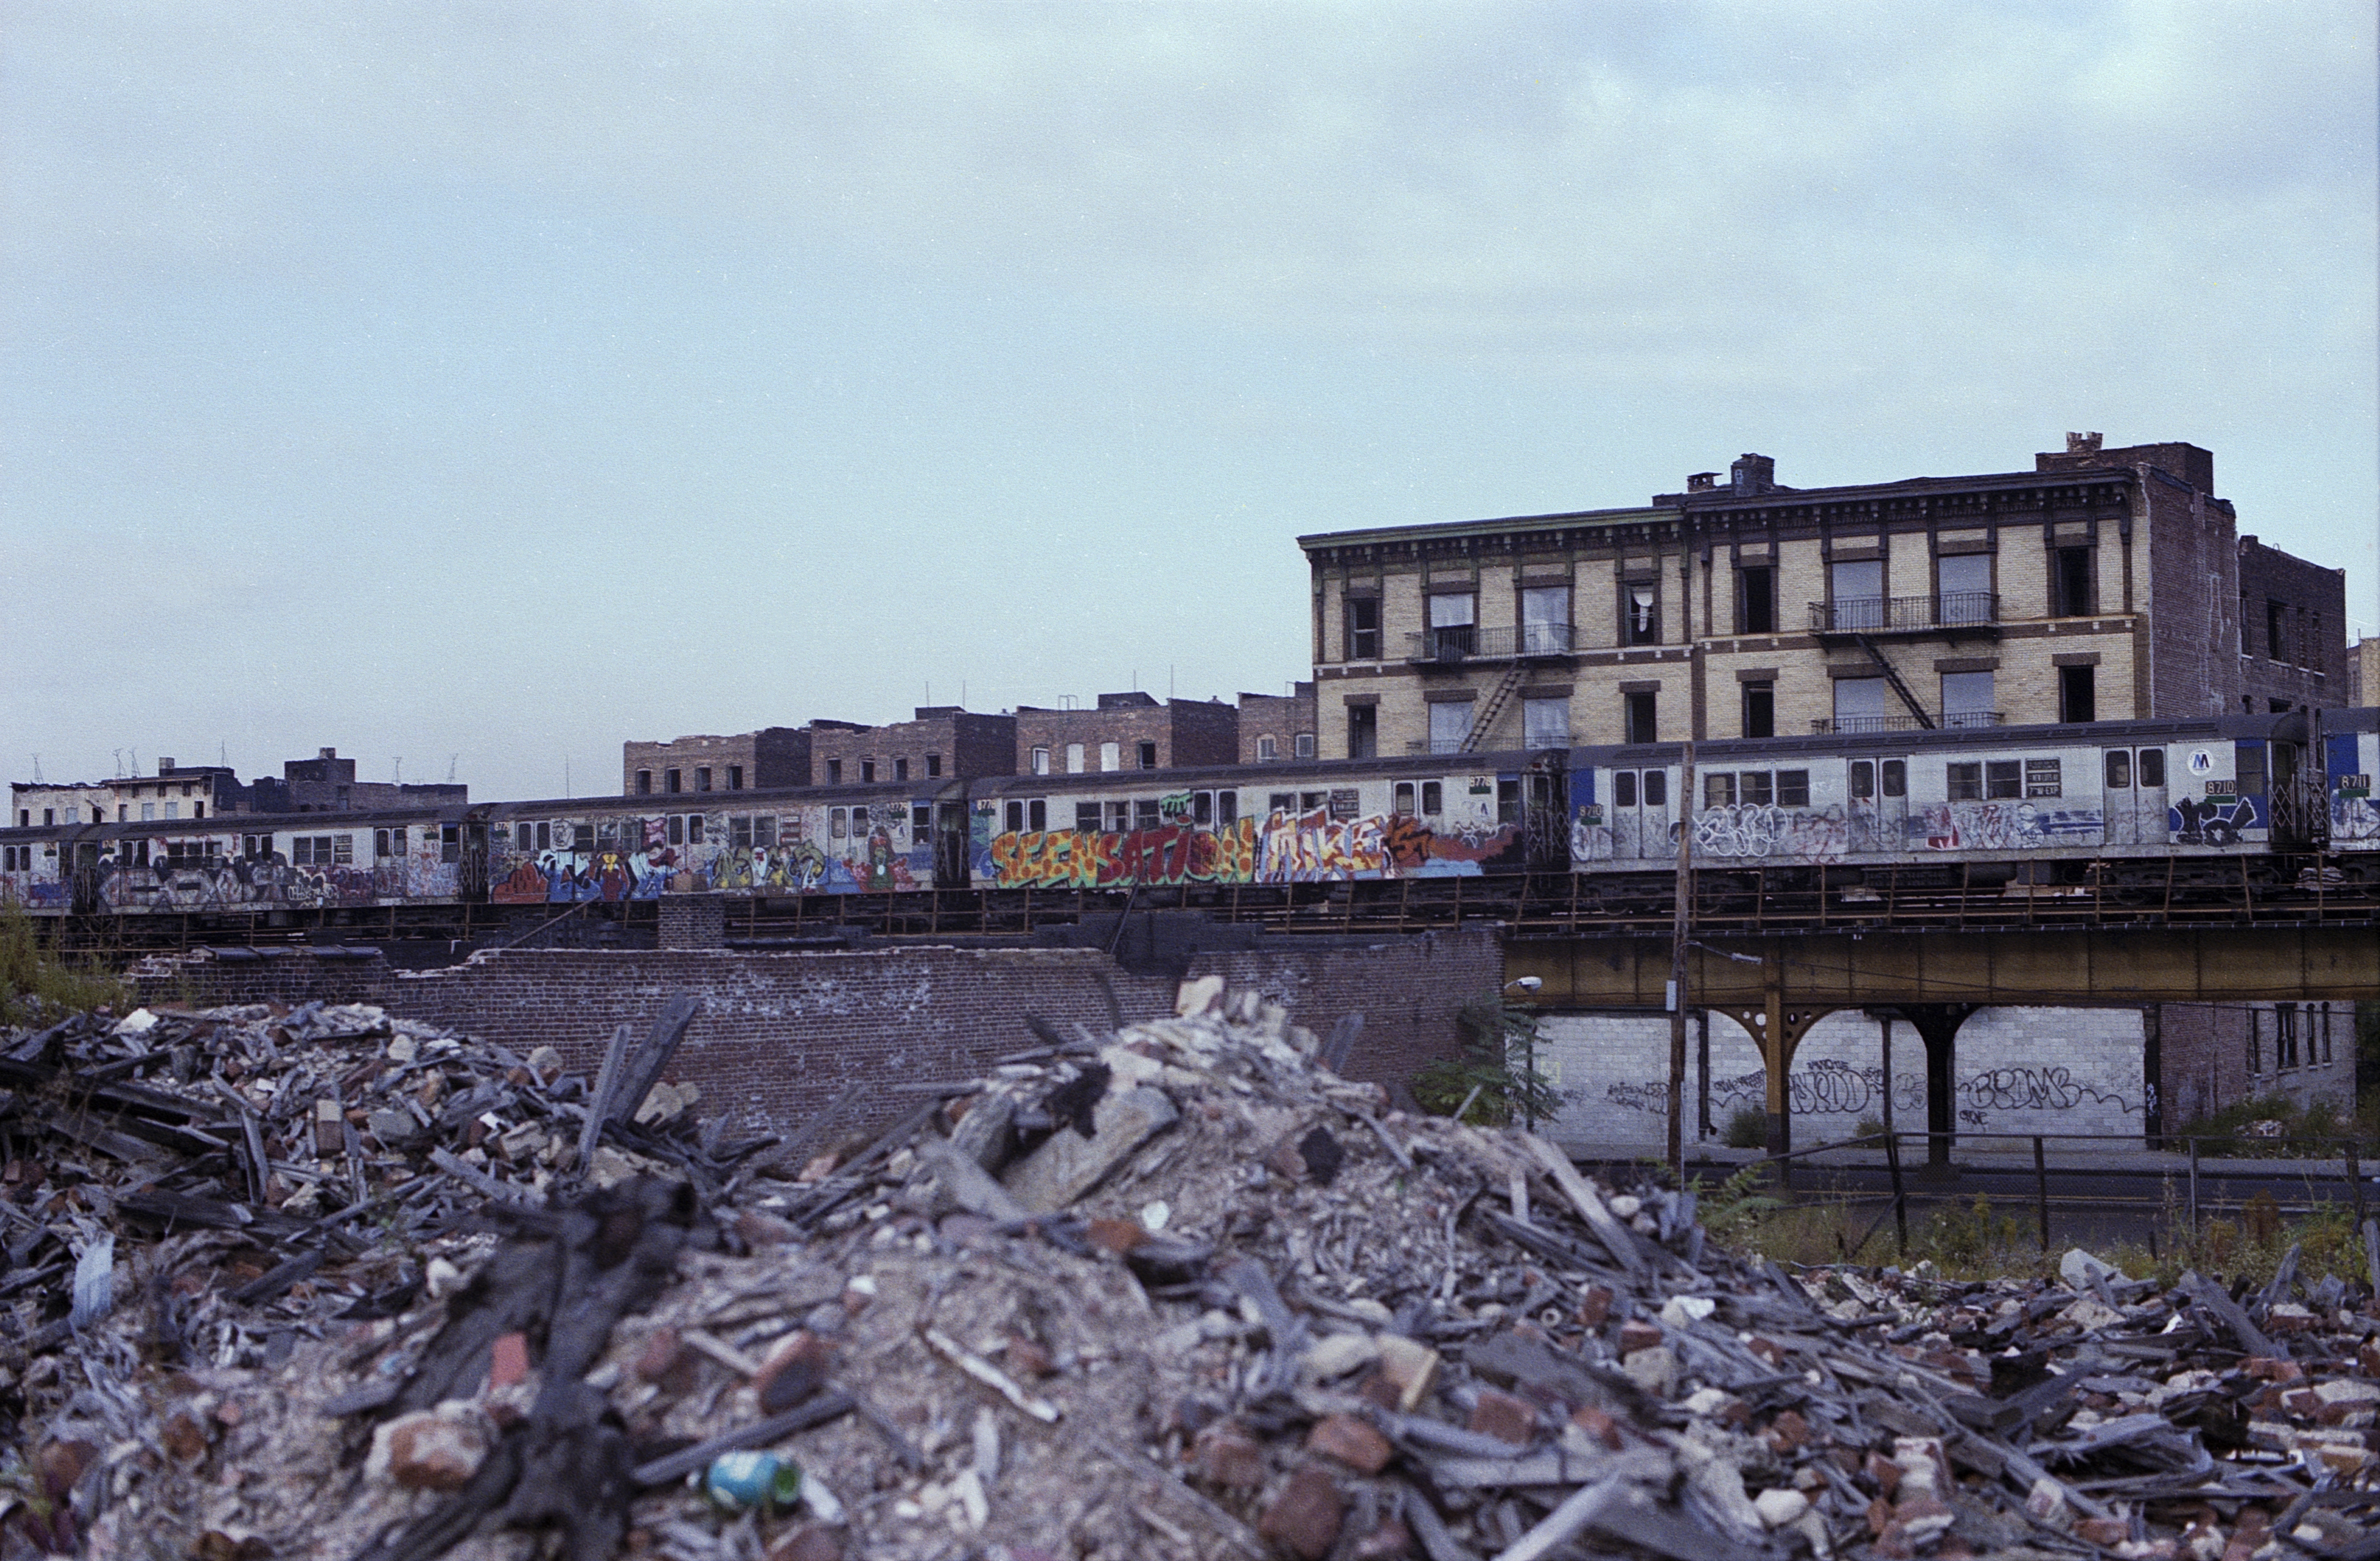 A street filled with rubble and an above-ground train filled with graffiti passing through.